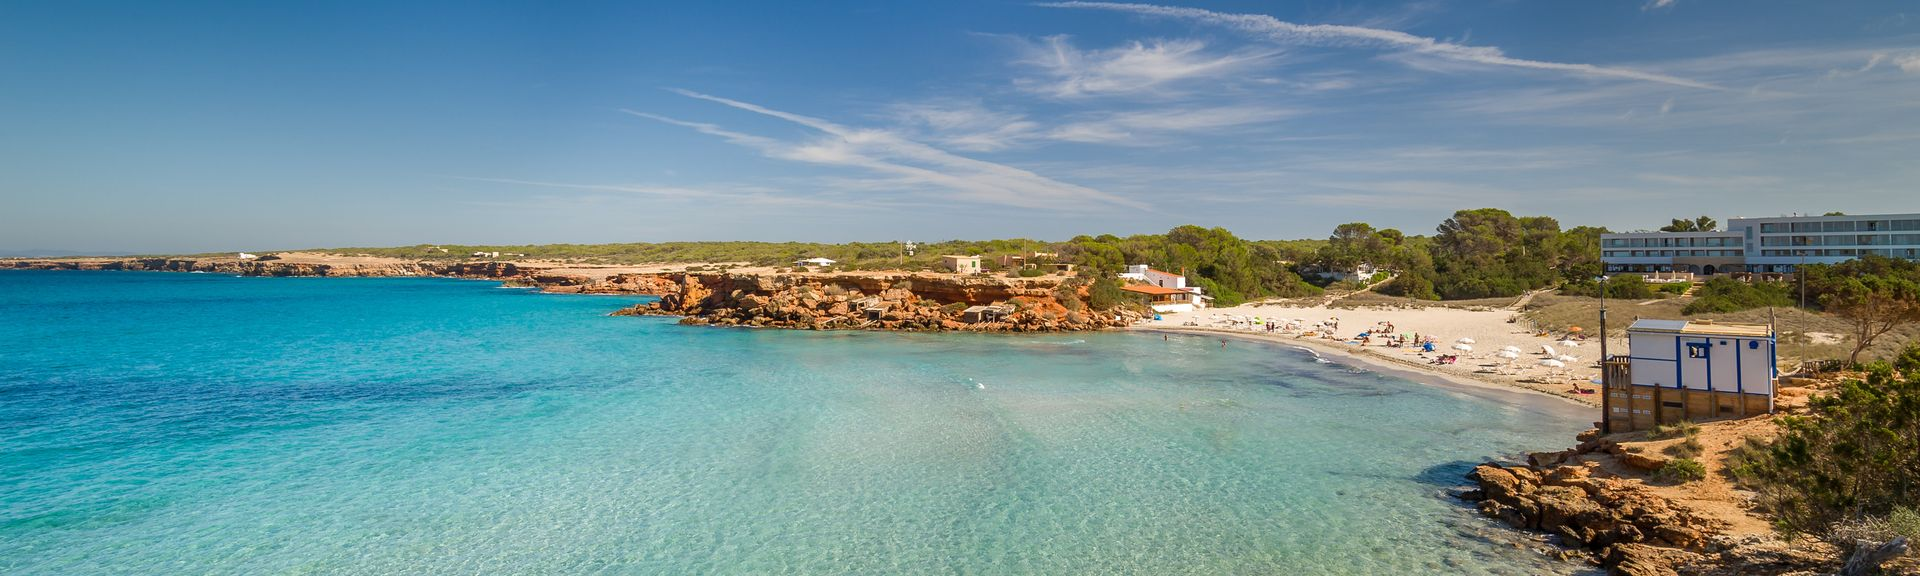 Soggiorno Formentera Settembre Vrbo Formentera Es Vacation Rentals Reviews Booking